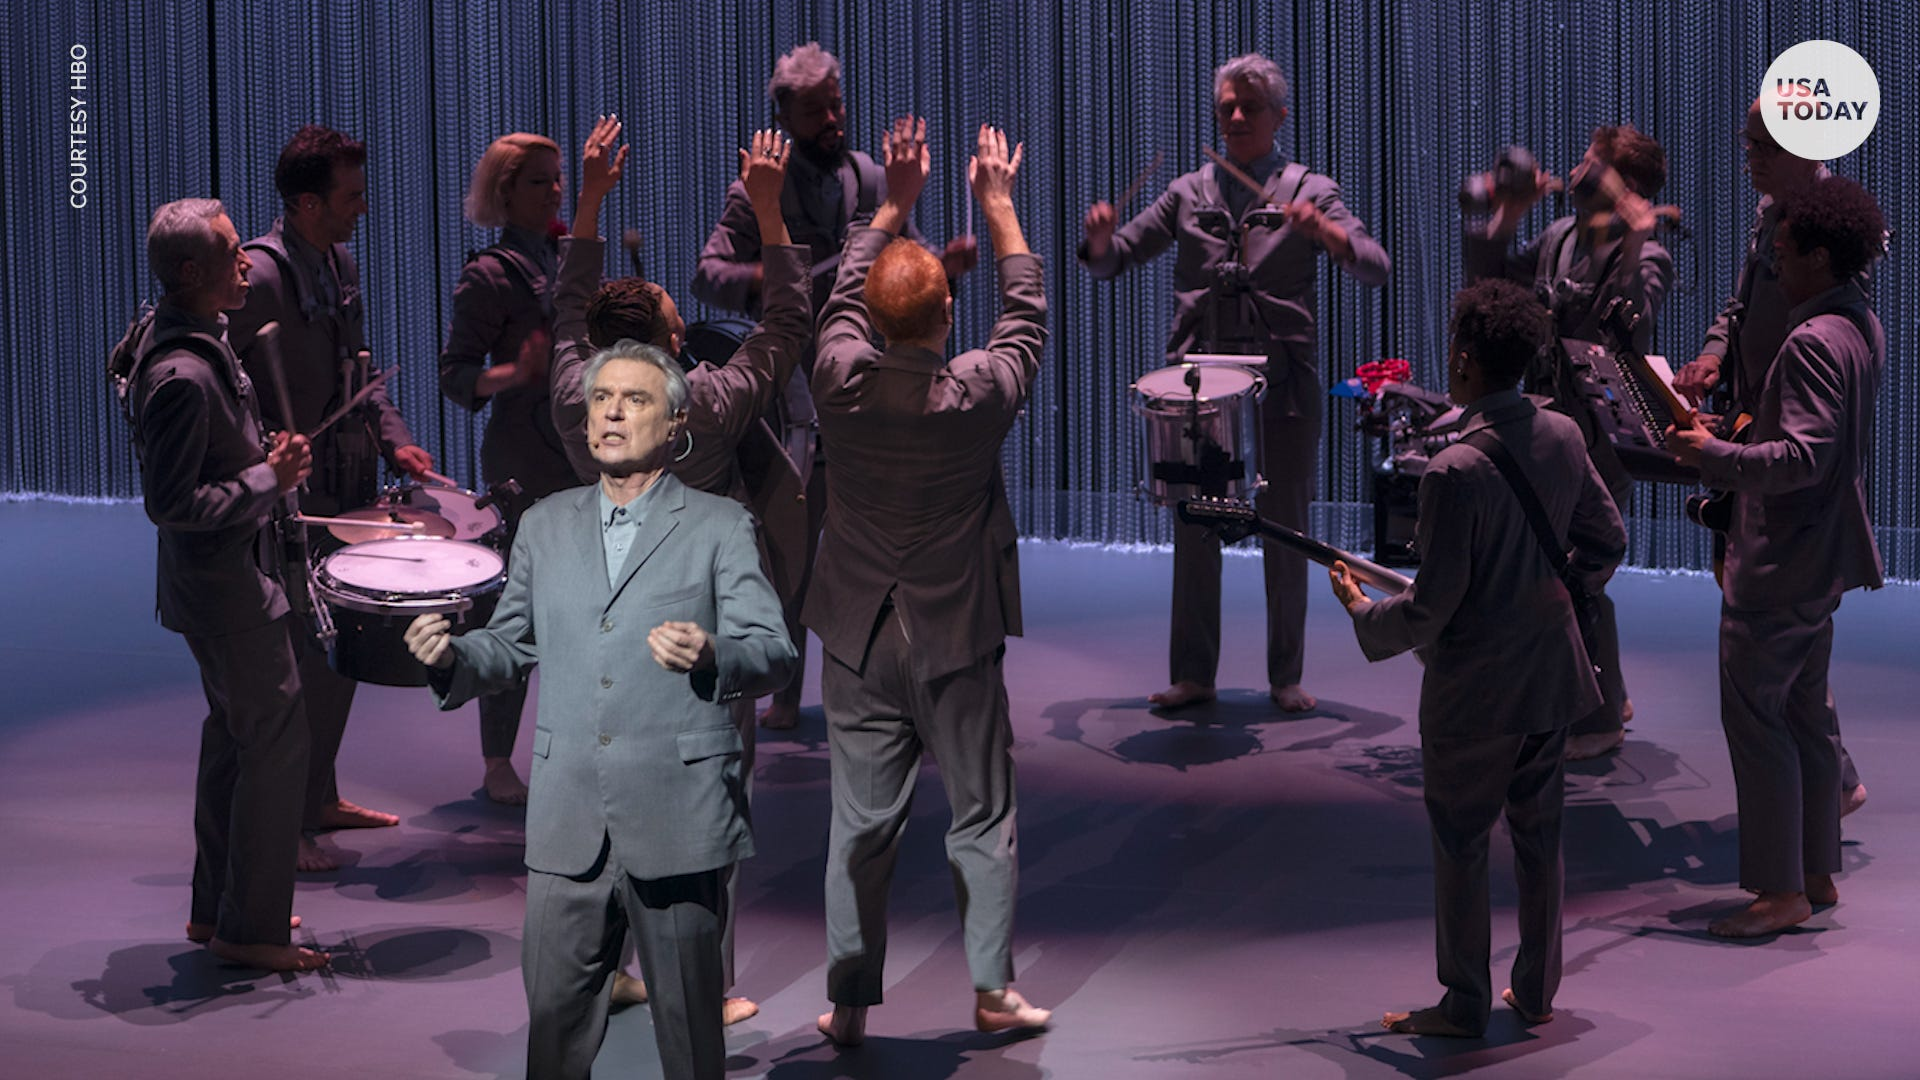 David Byrne teams up with Spike Lee for HBO concert movie 'American Utopia'